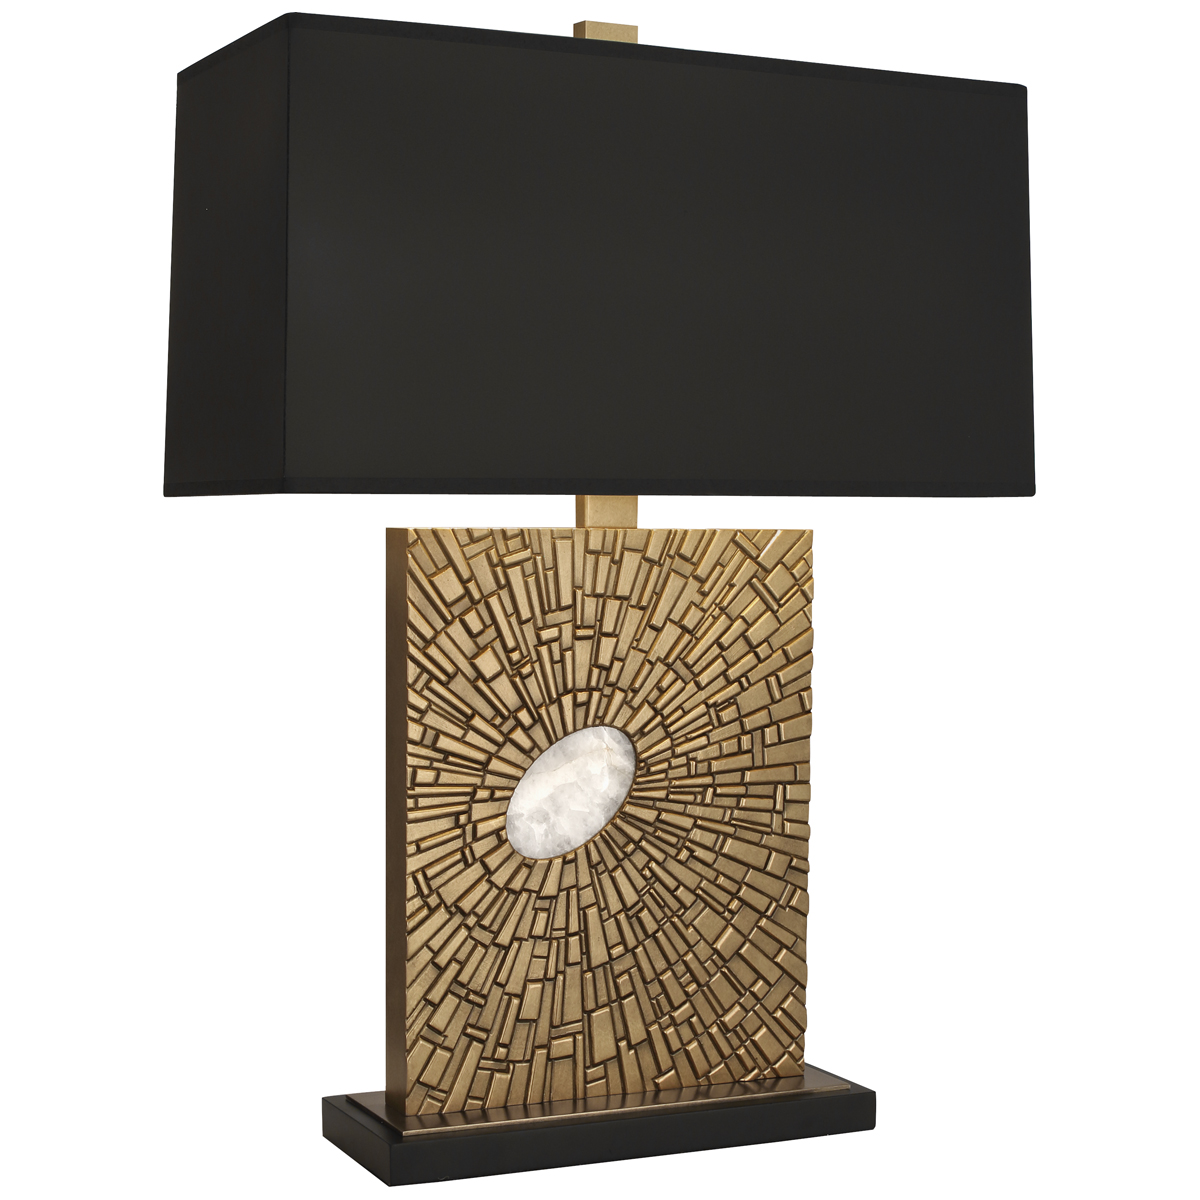 Goliath Table Lamp Style #415B